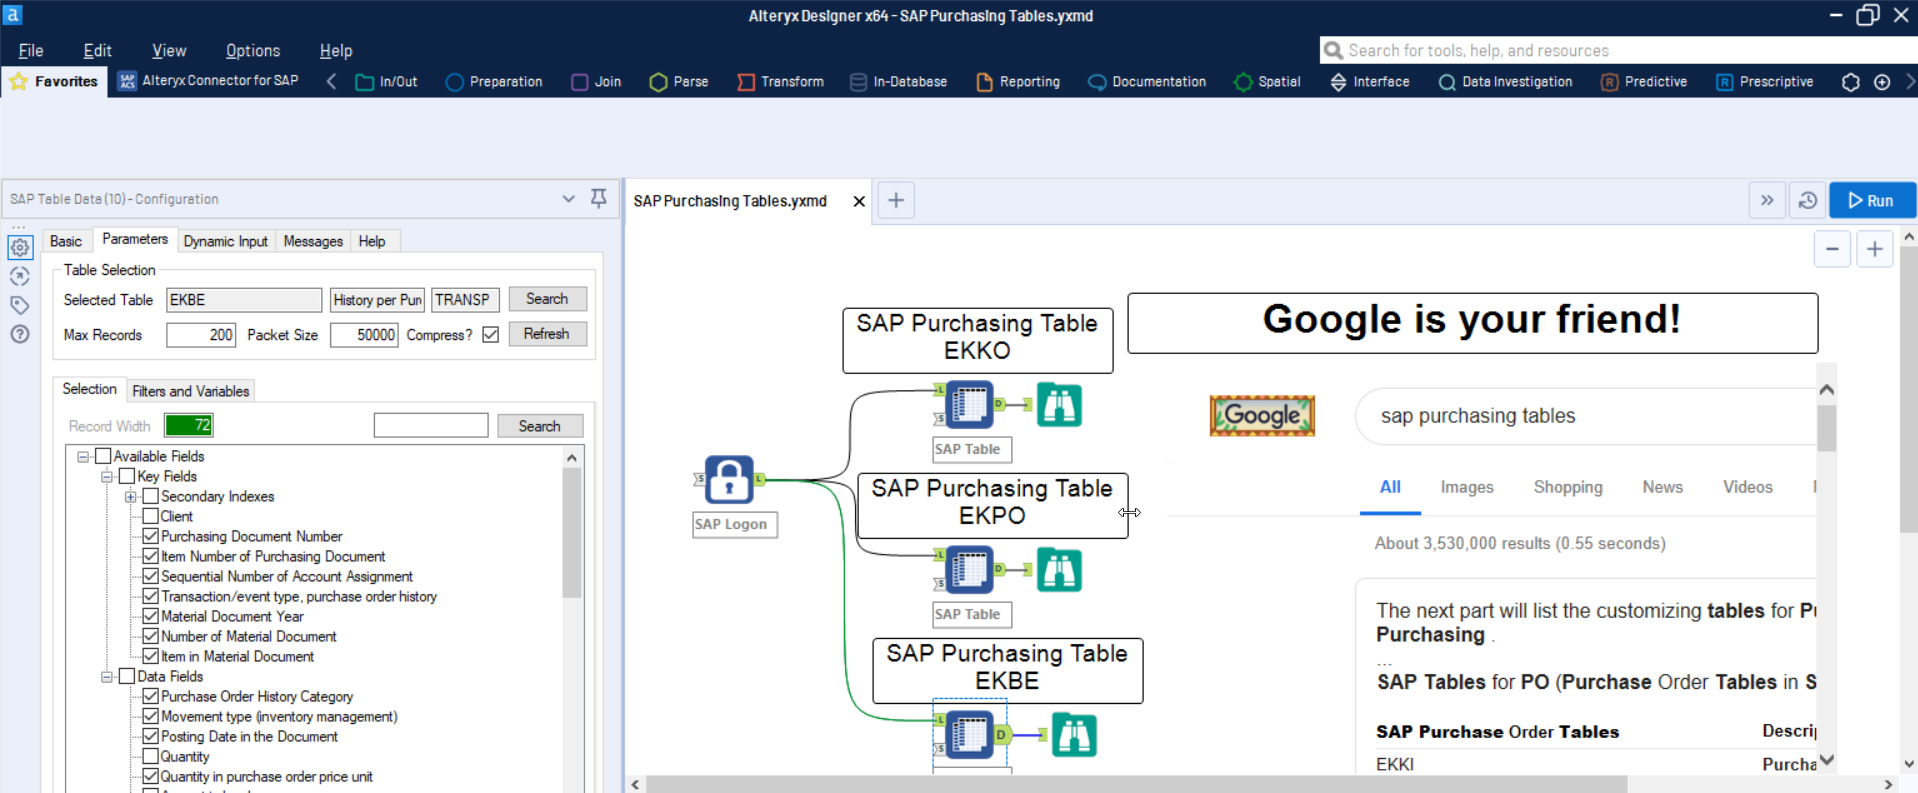 The most important SAP Purchasing tables for Alteryx users - DVW